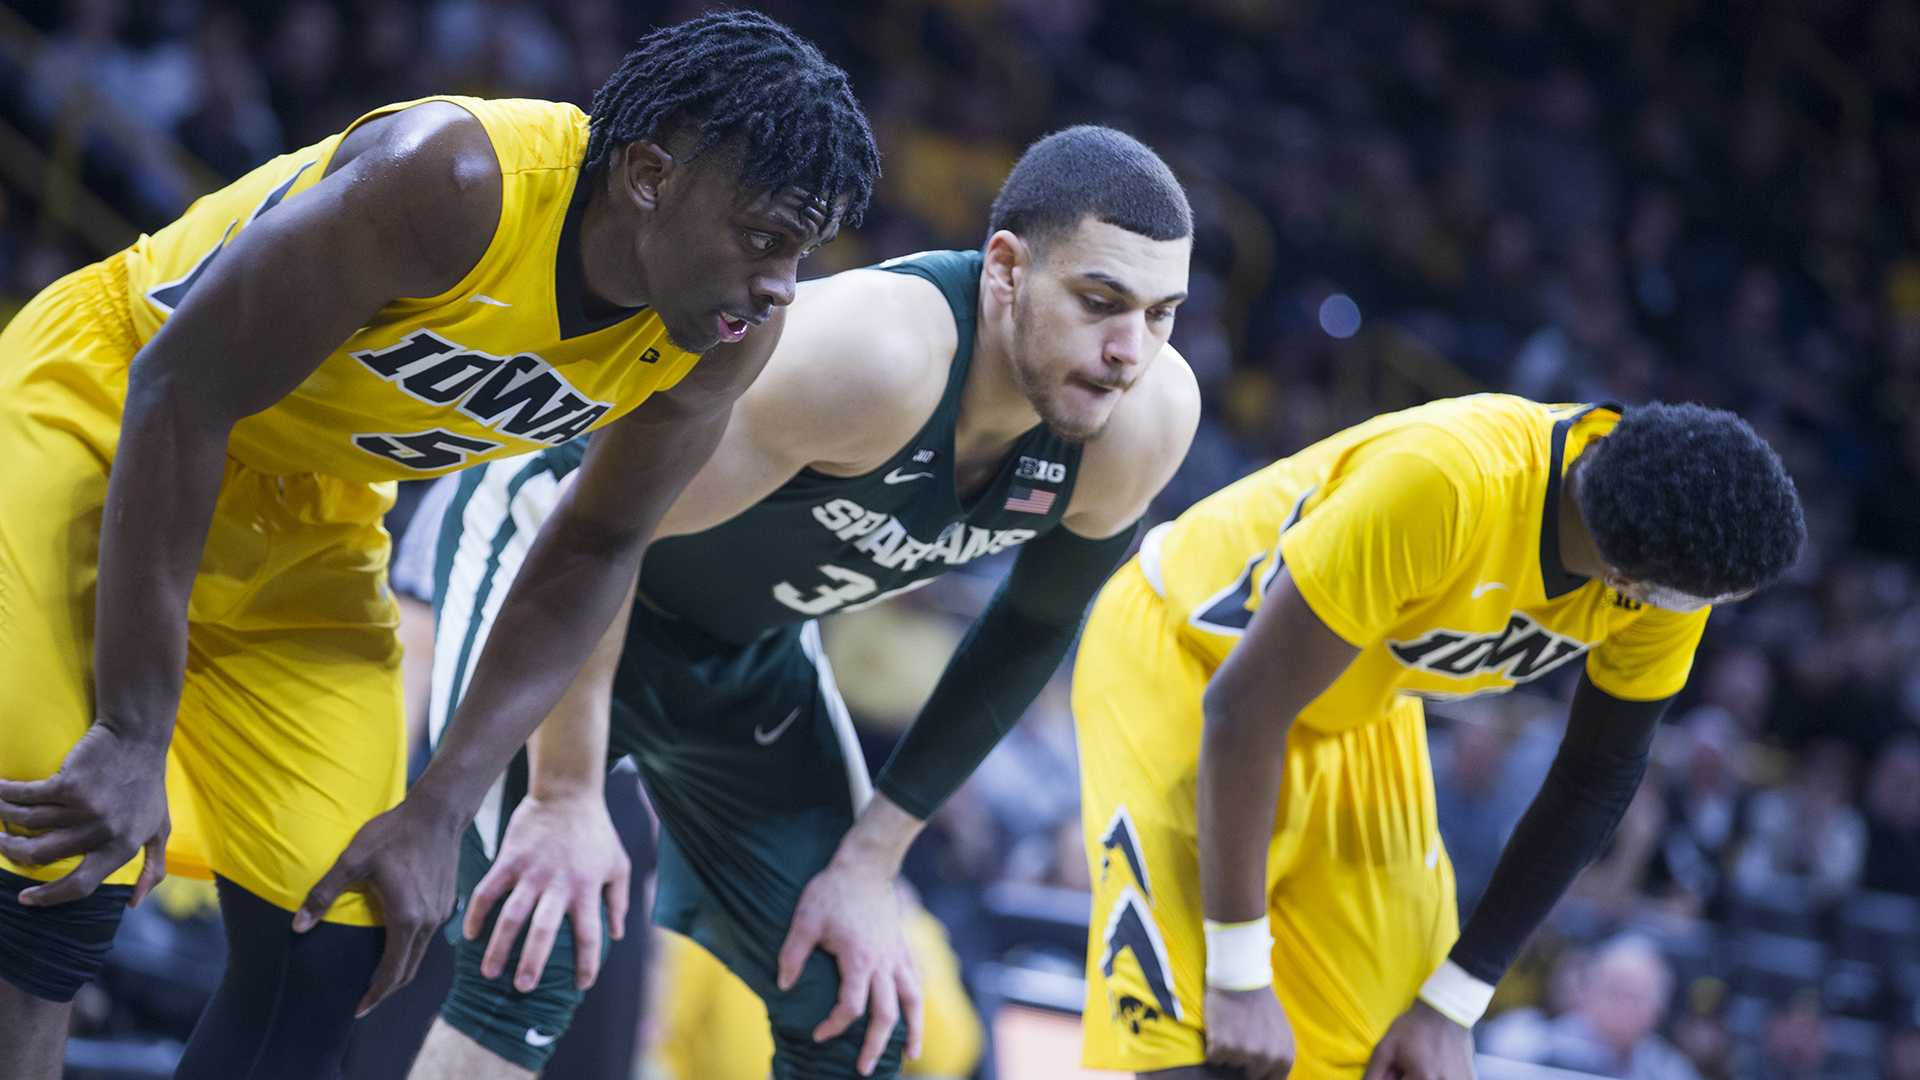 Iowa's Tyler Cook, Michigan State's Gavin Schilling, and Iowa's Isaiah Moss line up for a free throw attempt during a basketball game between Iowa and Michigan State on Tuesday, Feb. 6, 2018. The Spartans defeated the Hawkeyes 96-93. (Shivansh Ahuja/The Daily Iowan)